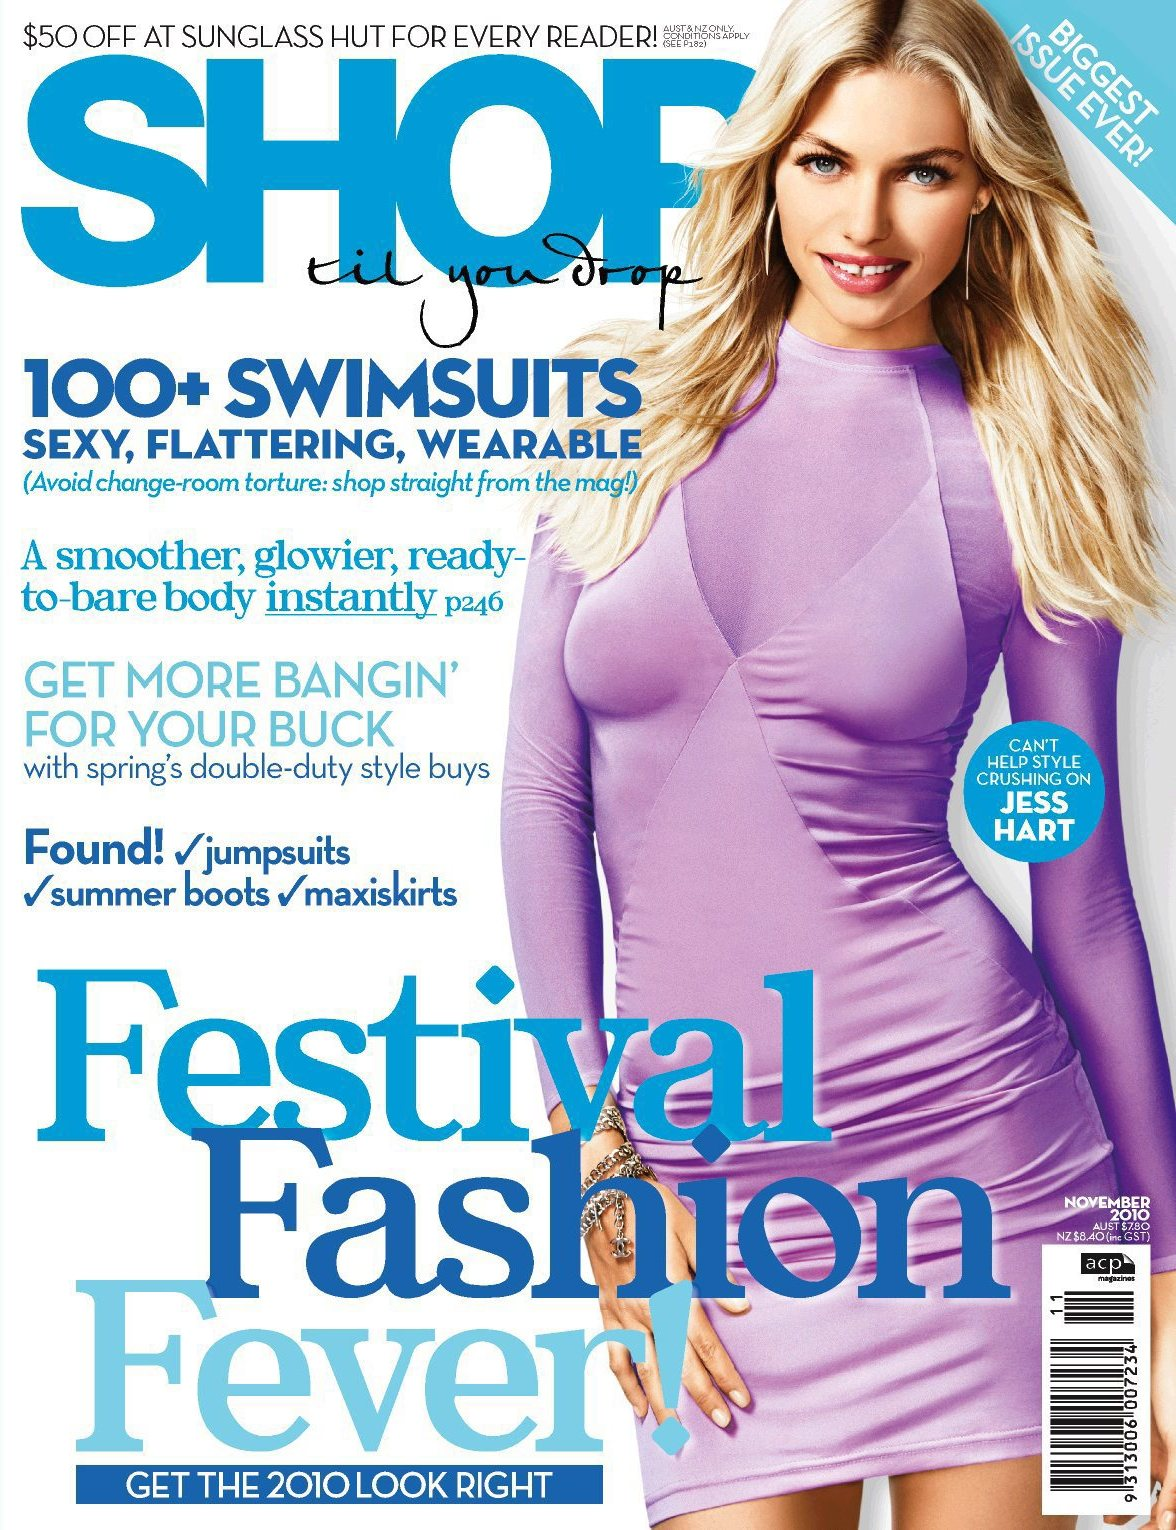 Get Your 2010 Fashion Look Right with the November Issue of Shop Til